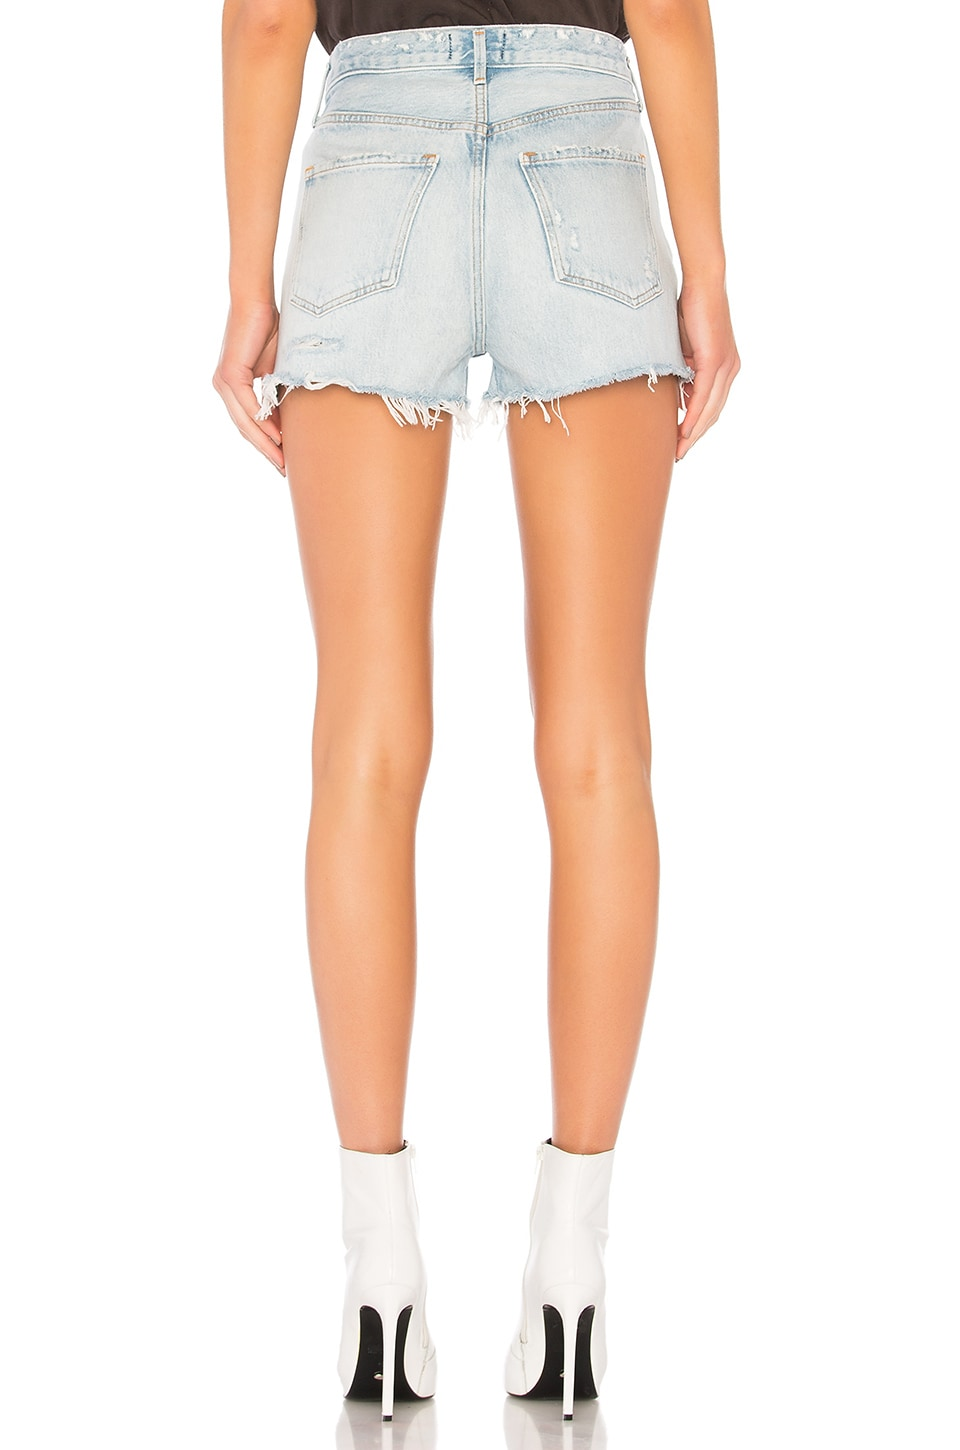 Jaden High Rise Shorts, view 3, click to view large image.